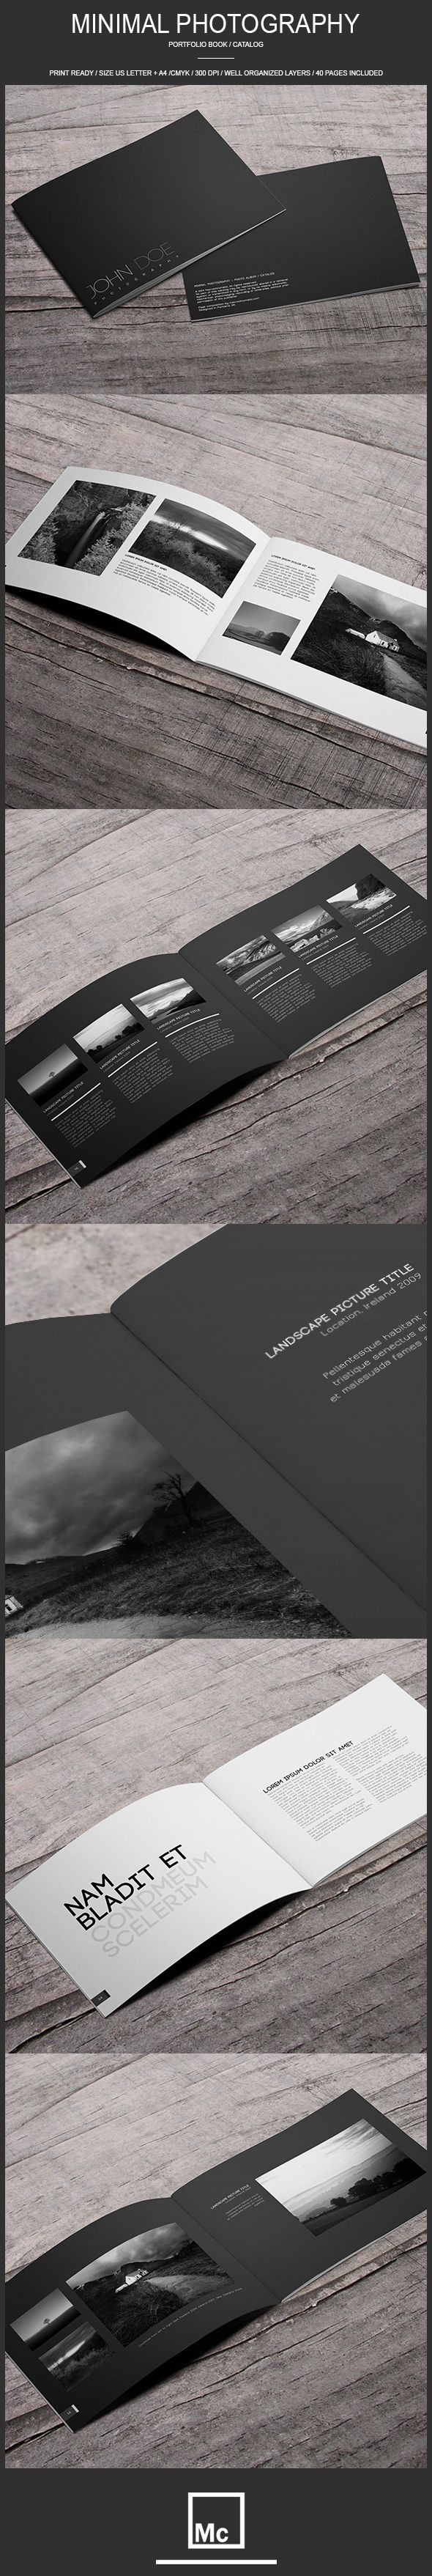 Pages with white on black, really nice way to break up the chapters without using stock photography, could still have textures and illustrations on them in white, perhaps the company print. -  40 Page Minimal - Photography Portfolio Book by Macrochromatic, via Behance